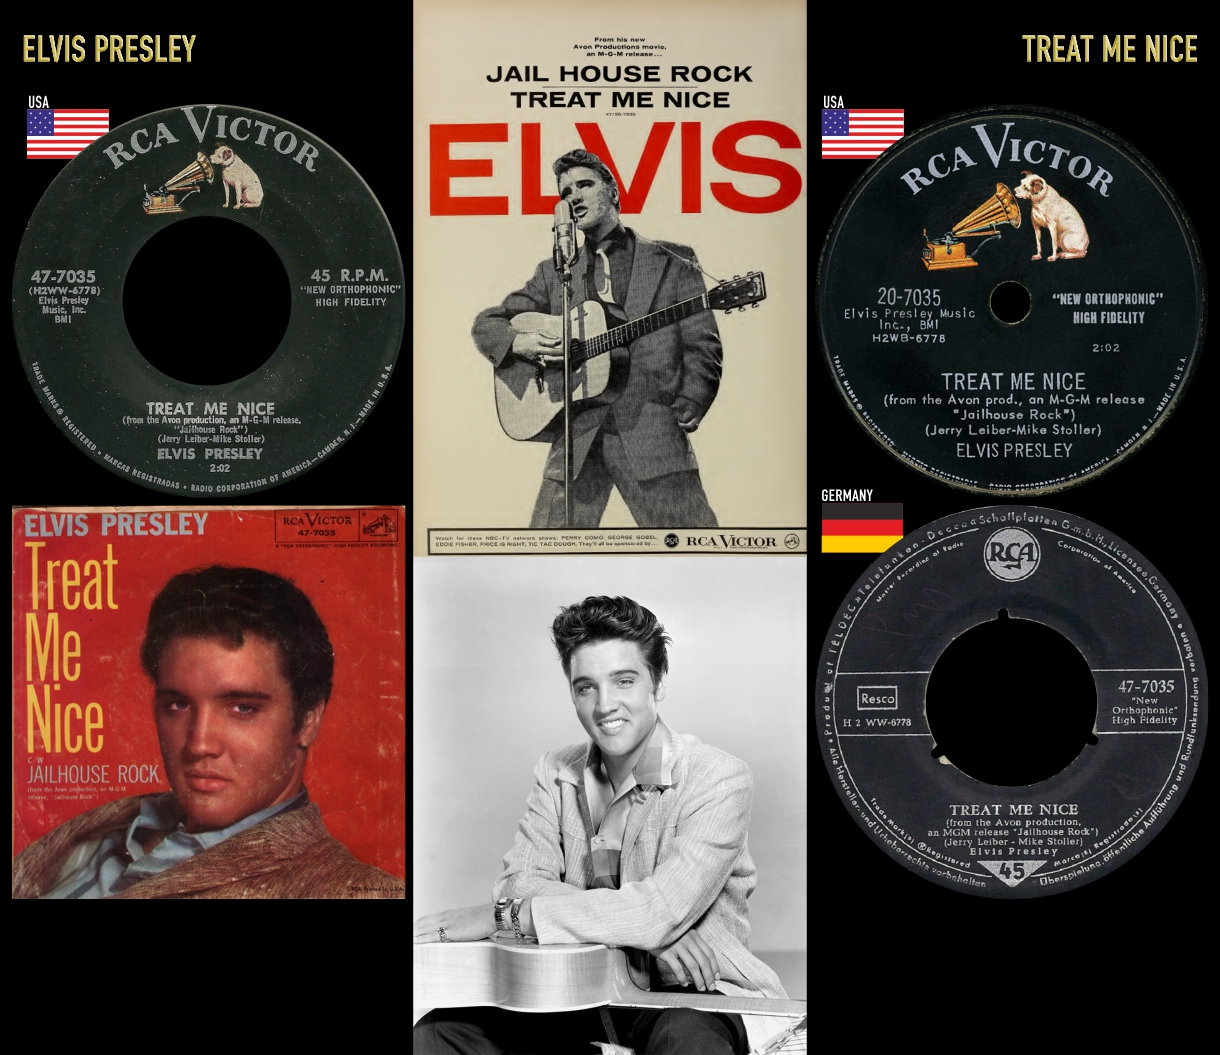 571019_Elvis Presley_Treat Me Nice